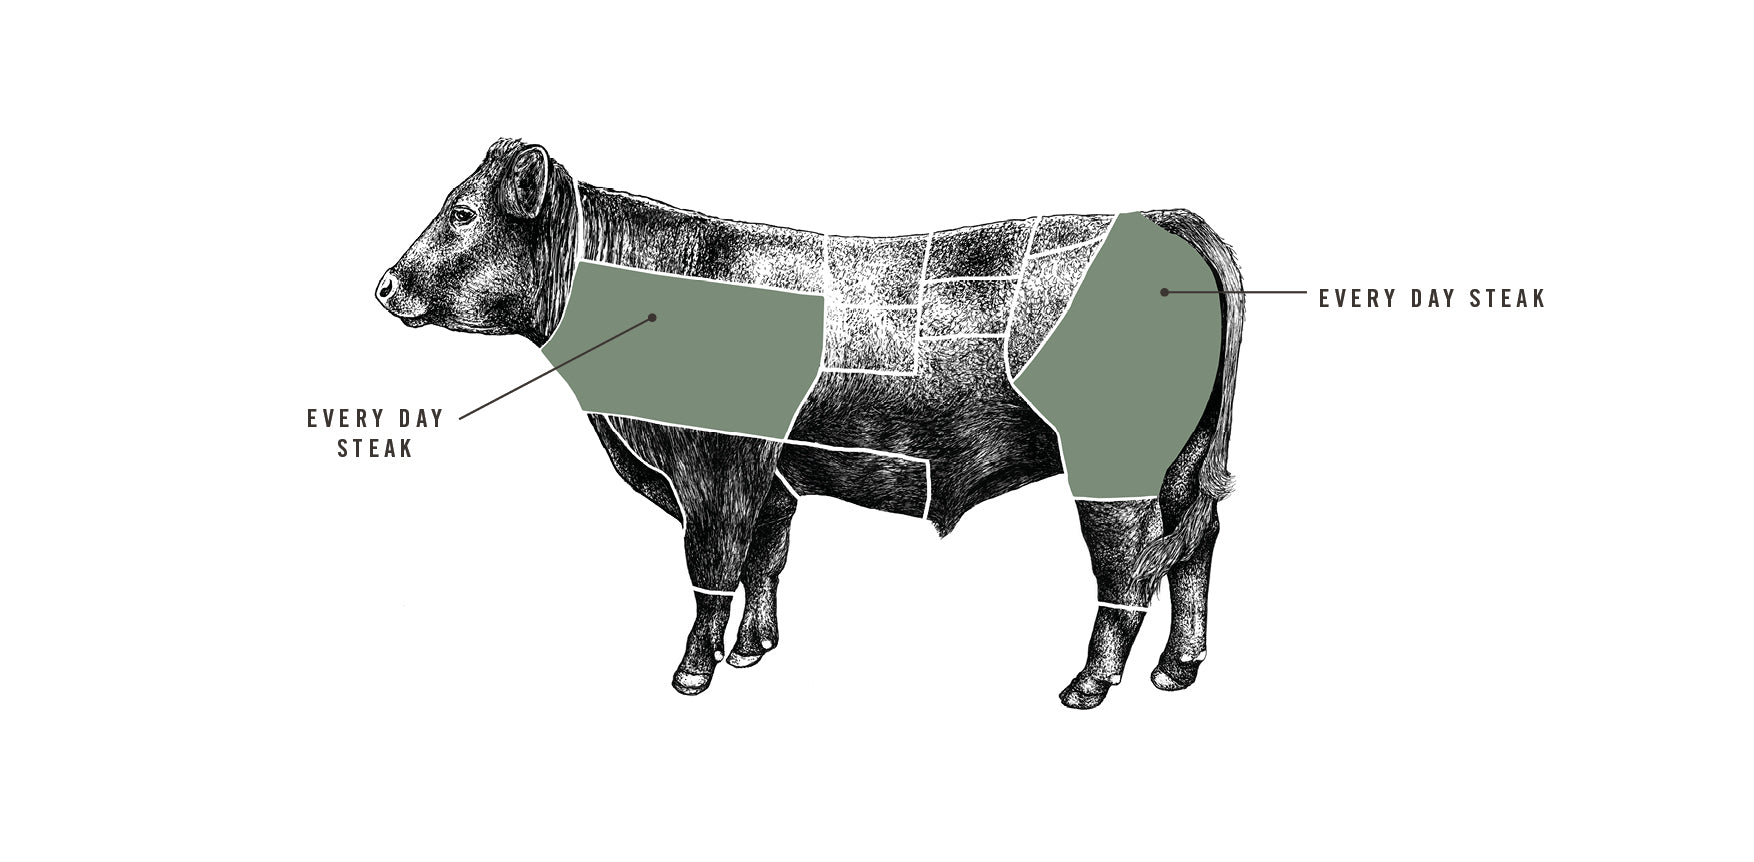 Grass Fed Beef Every Day Steak meat cuts diagram